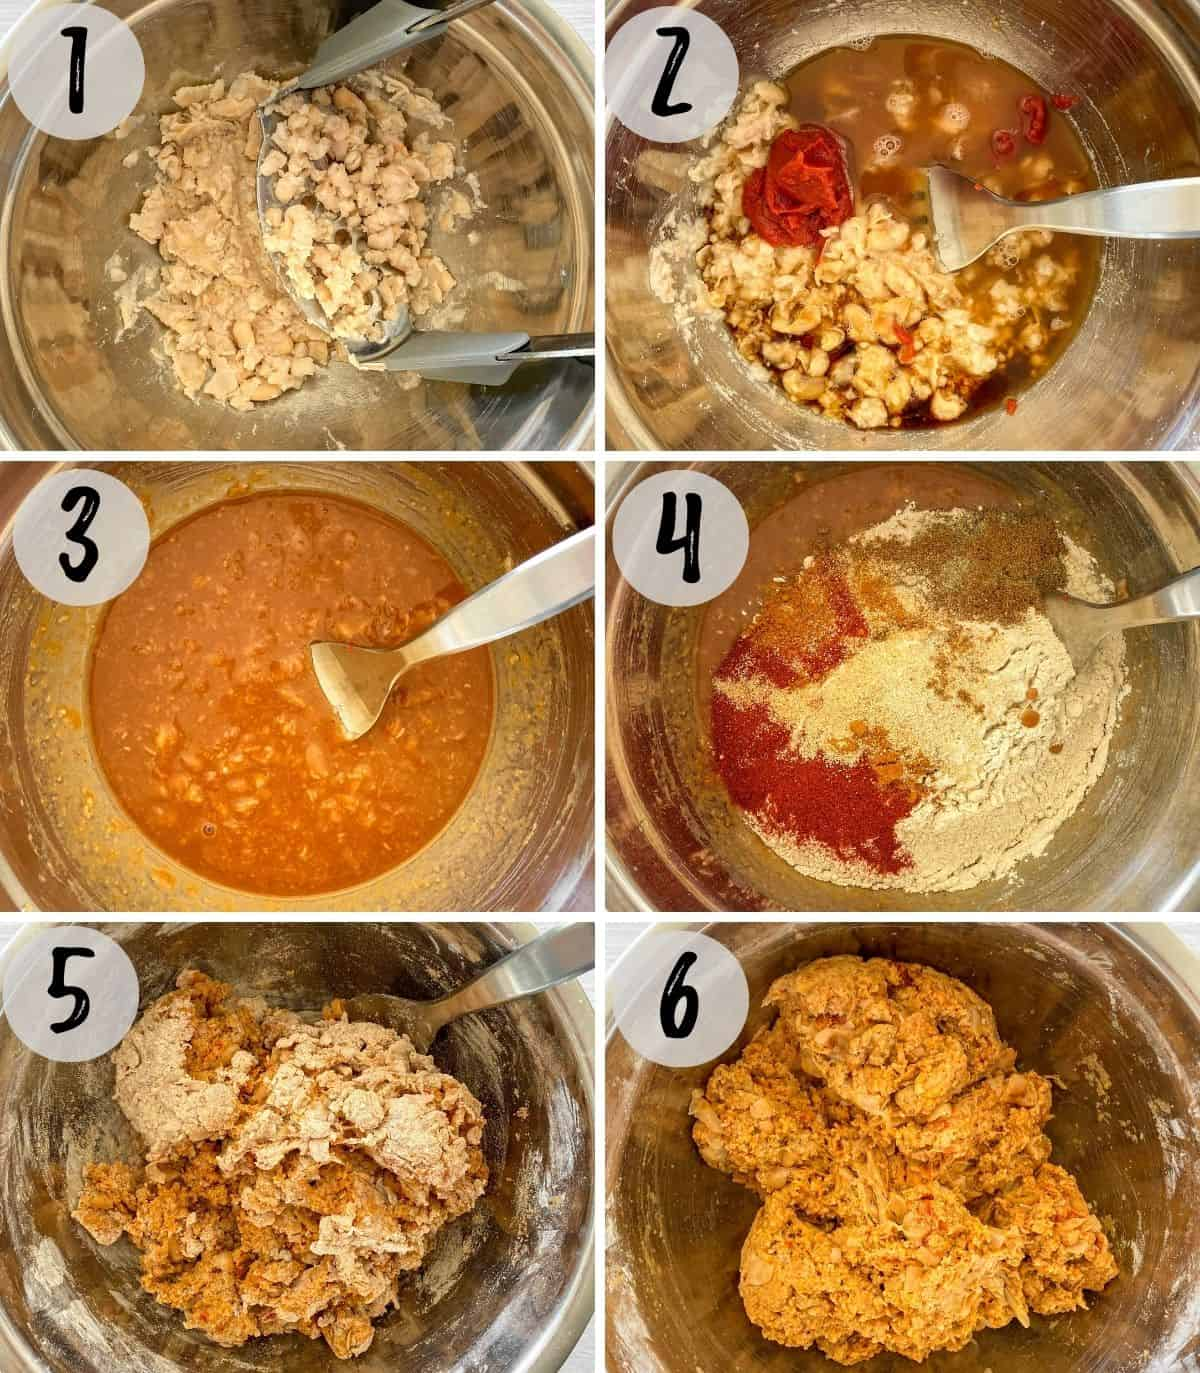 Image collage of beans being mashed, then liquids and dry ingredients added and mixed into a ball of dough.